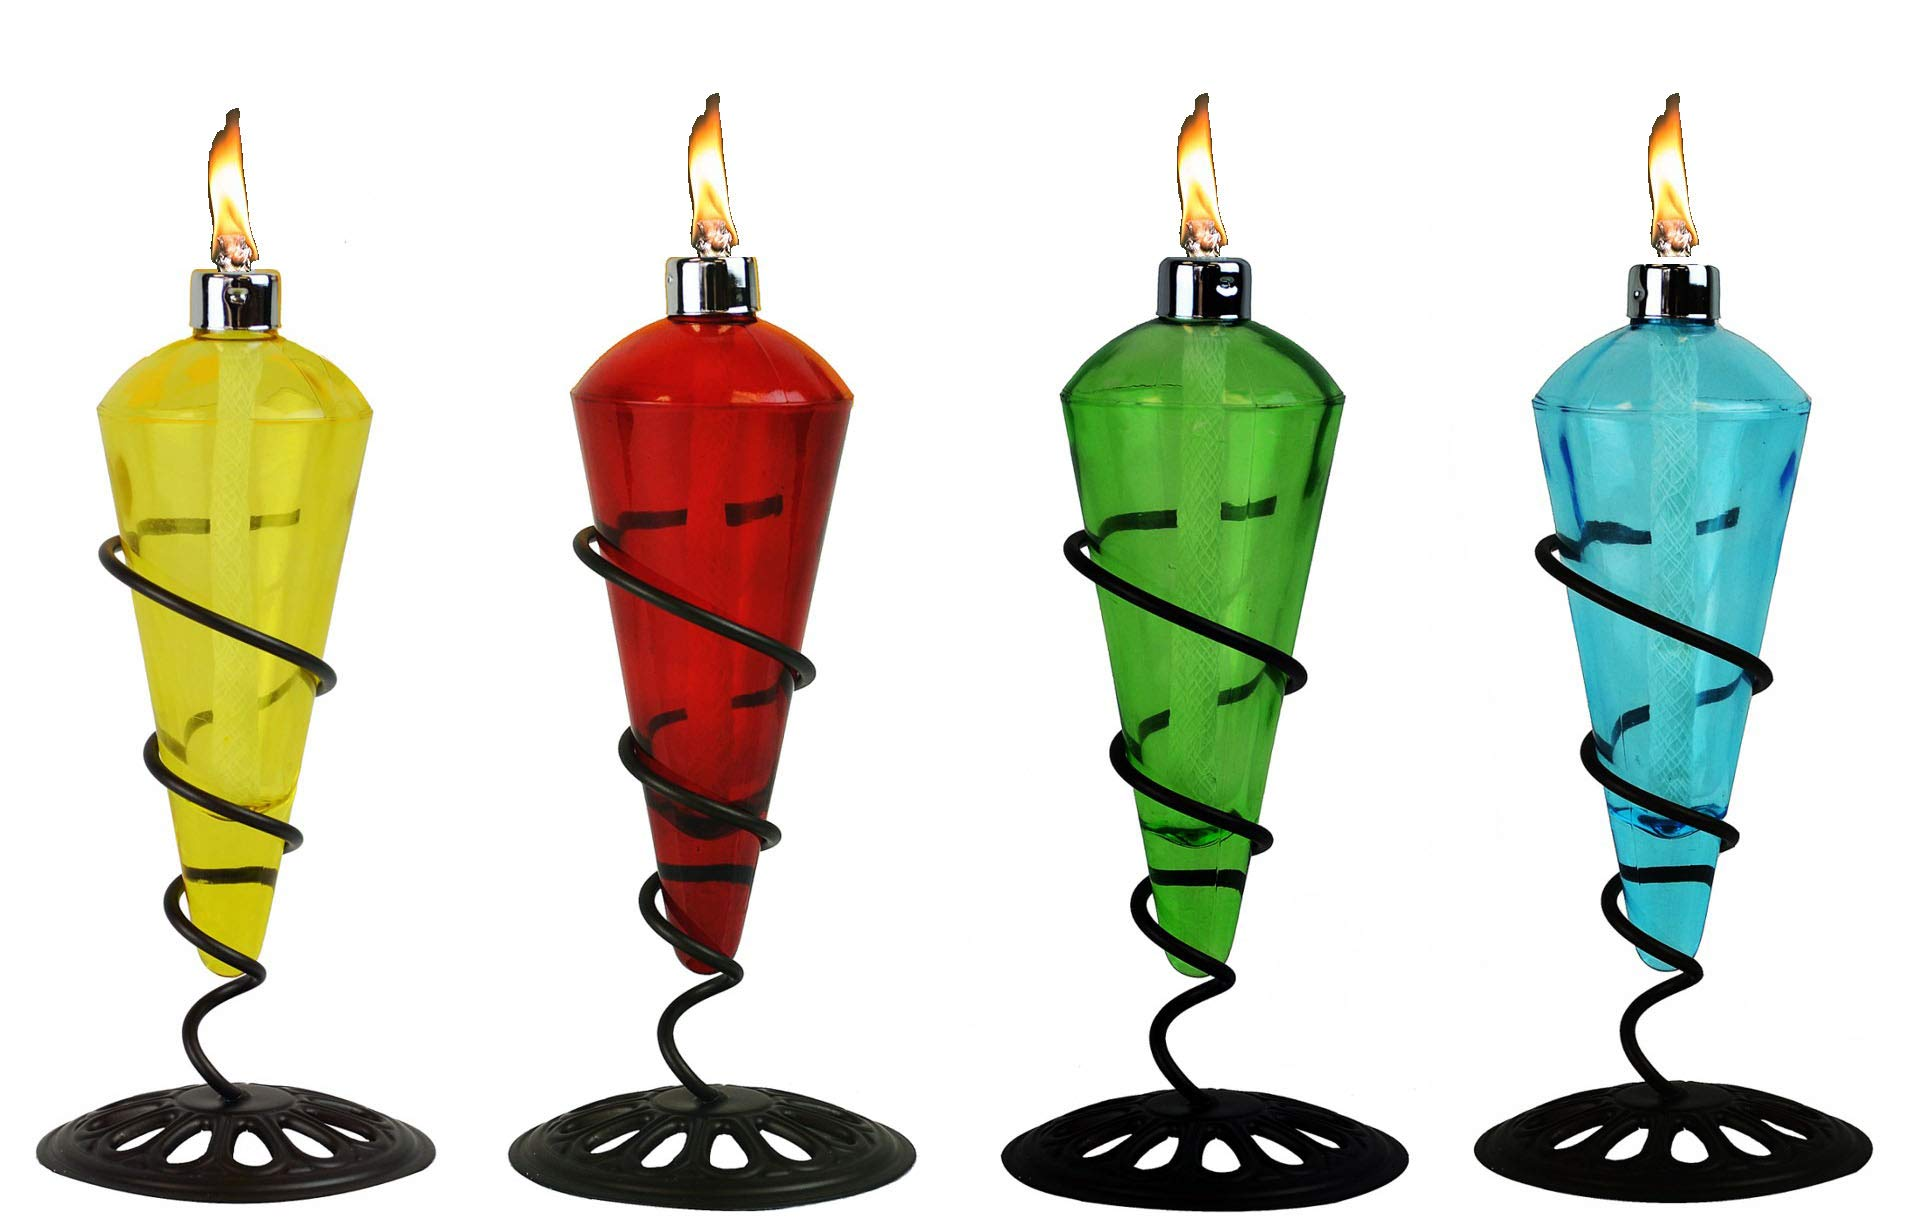 4 Pack 11 in Assorted Color Table Top Torch - Burning Citronella / Lamp Oil Product SKU: GD10079